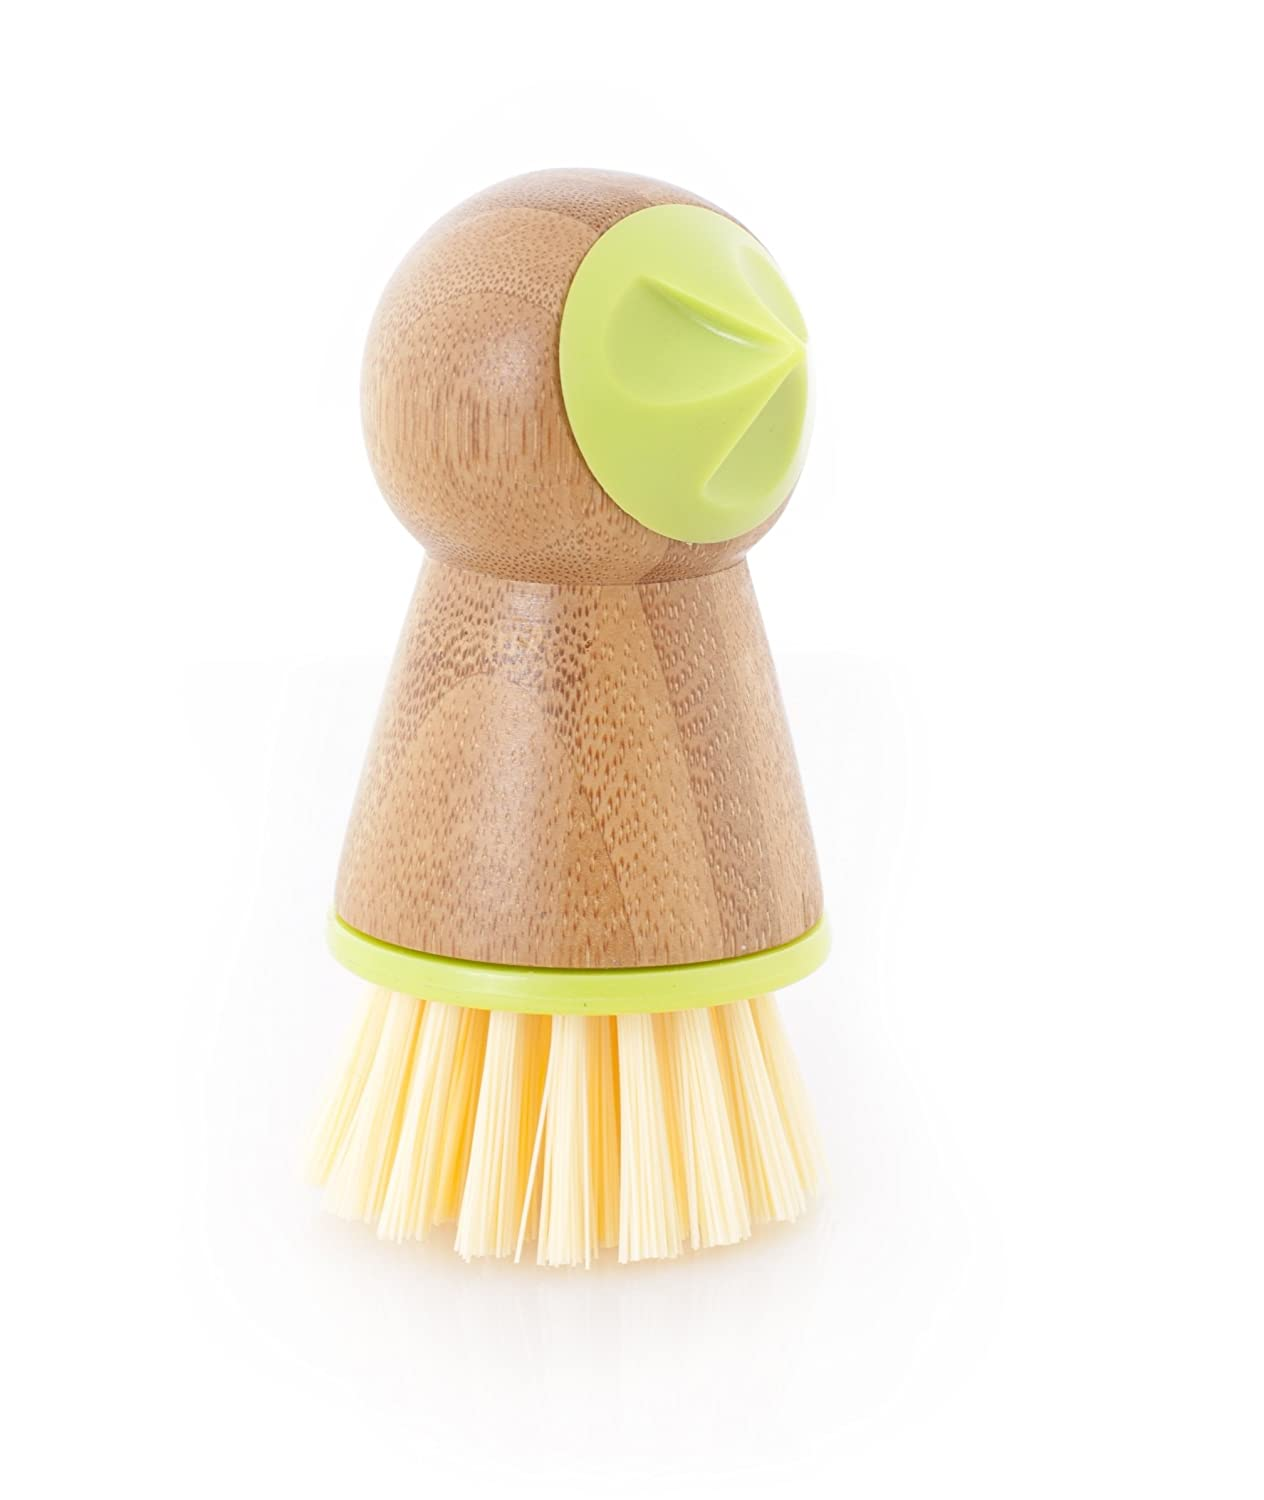 Full Circle Tater Mate Bamboo Potato Brush with Eye Remover, Green